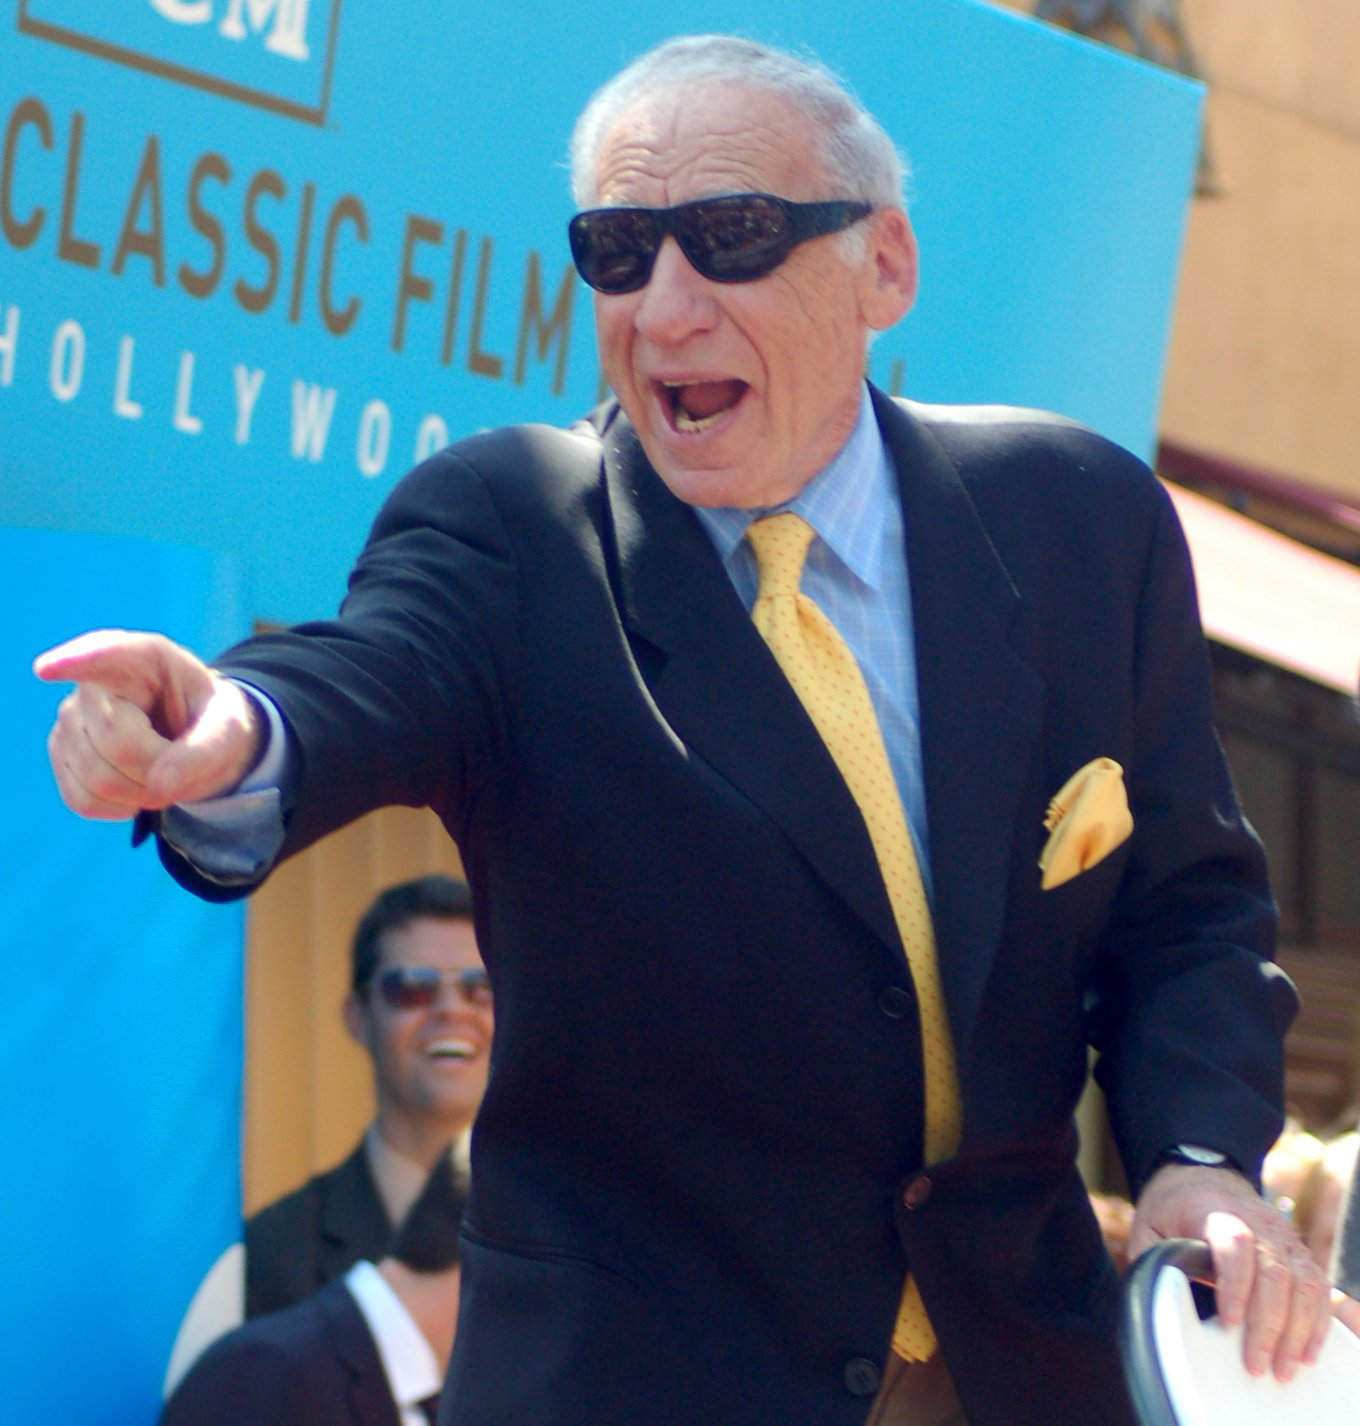 Mel Brooks at his Hollywood Walk of Fame ceremony, April 2010 | Source: Wikimedia Commons